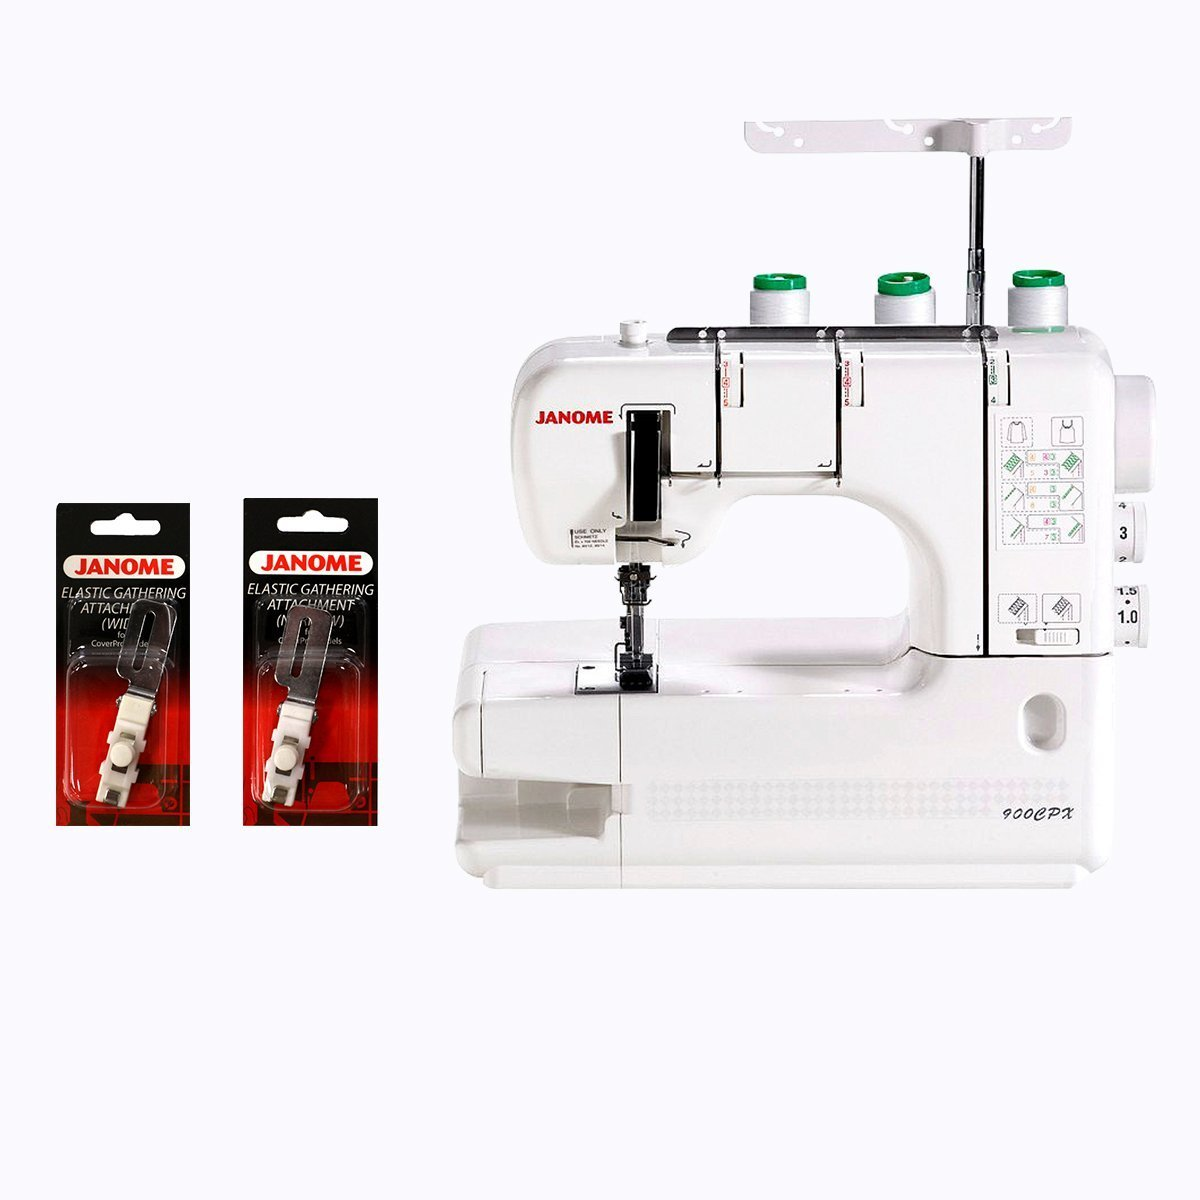 Top 5 Best Serger For Knits (2019 Reviews) 3